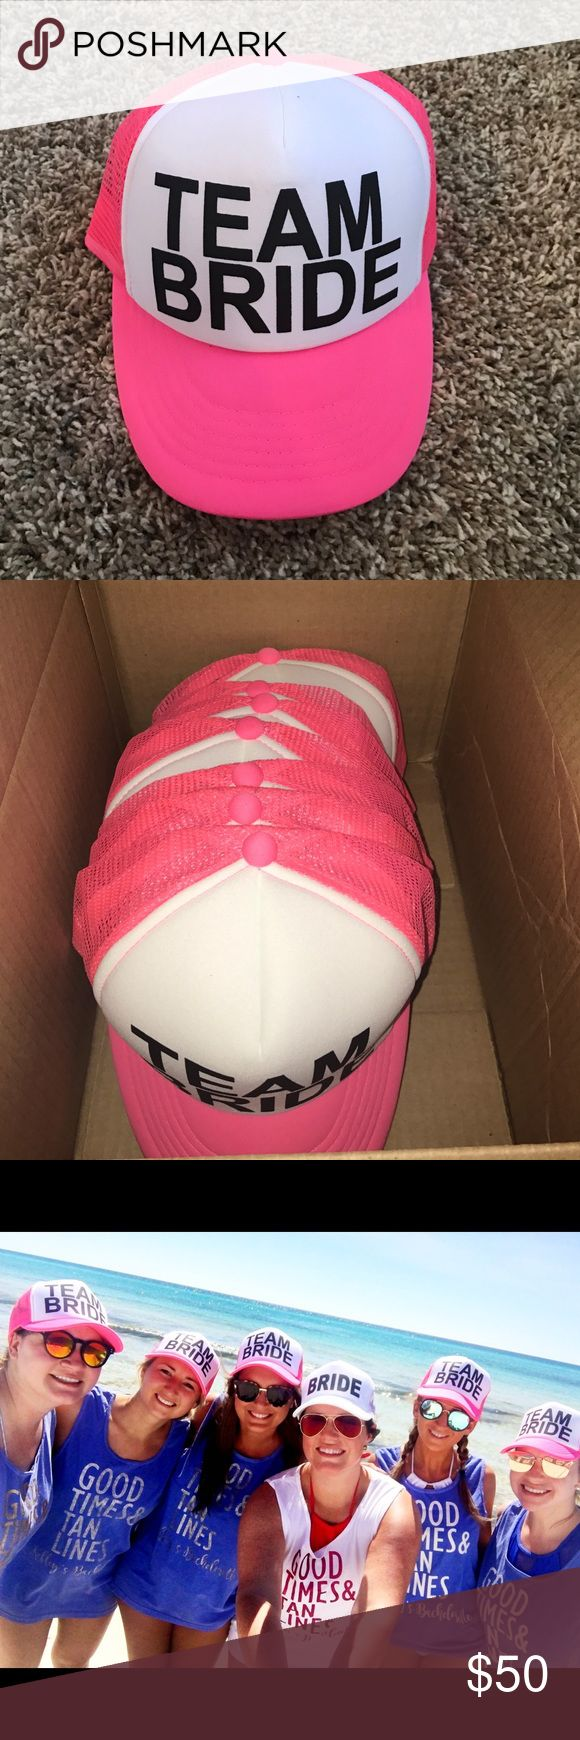 6 Team Bride hot pink trucker hats I have 6 hot pink #teambride hats available. I originally ordered 13 hats, including the bride, but then only 6 people ended up going on the bachelorette party. Soooo. I am left with these. They would def make a great party favor for any bachelorette party! We absolutely loved them feel free to ask questions or make an offer hats Accessories Hats